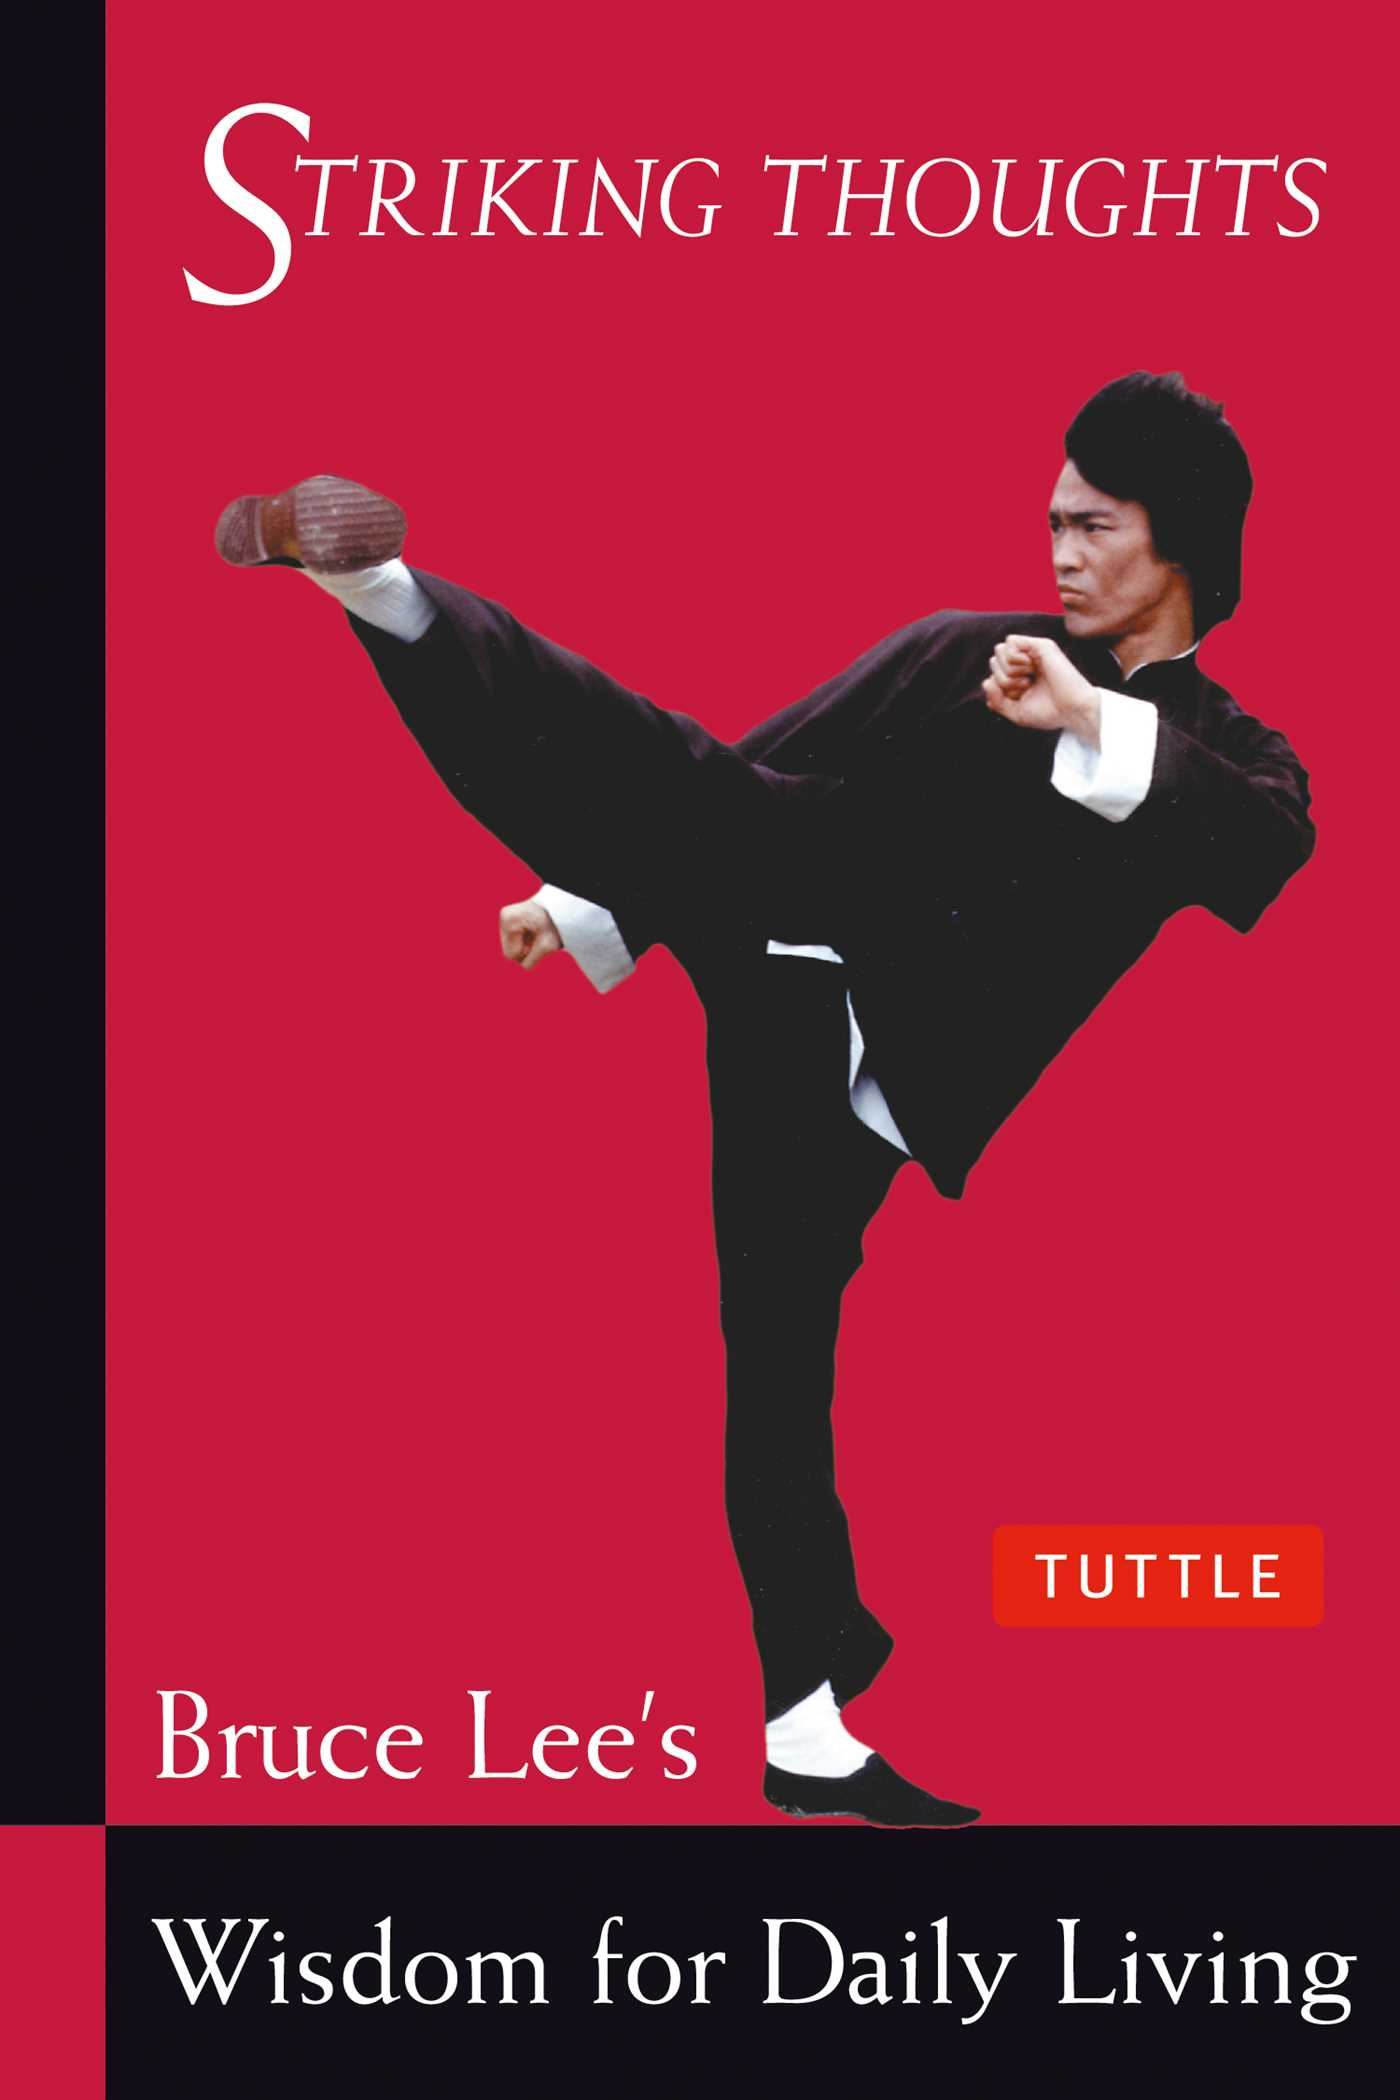 Bruce-lee-striking-thoughts-9780804834711_hr